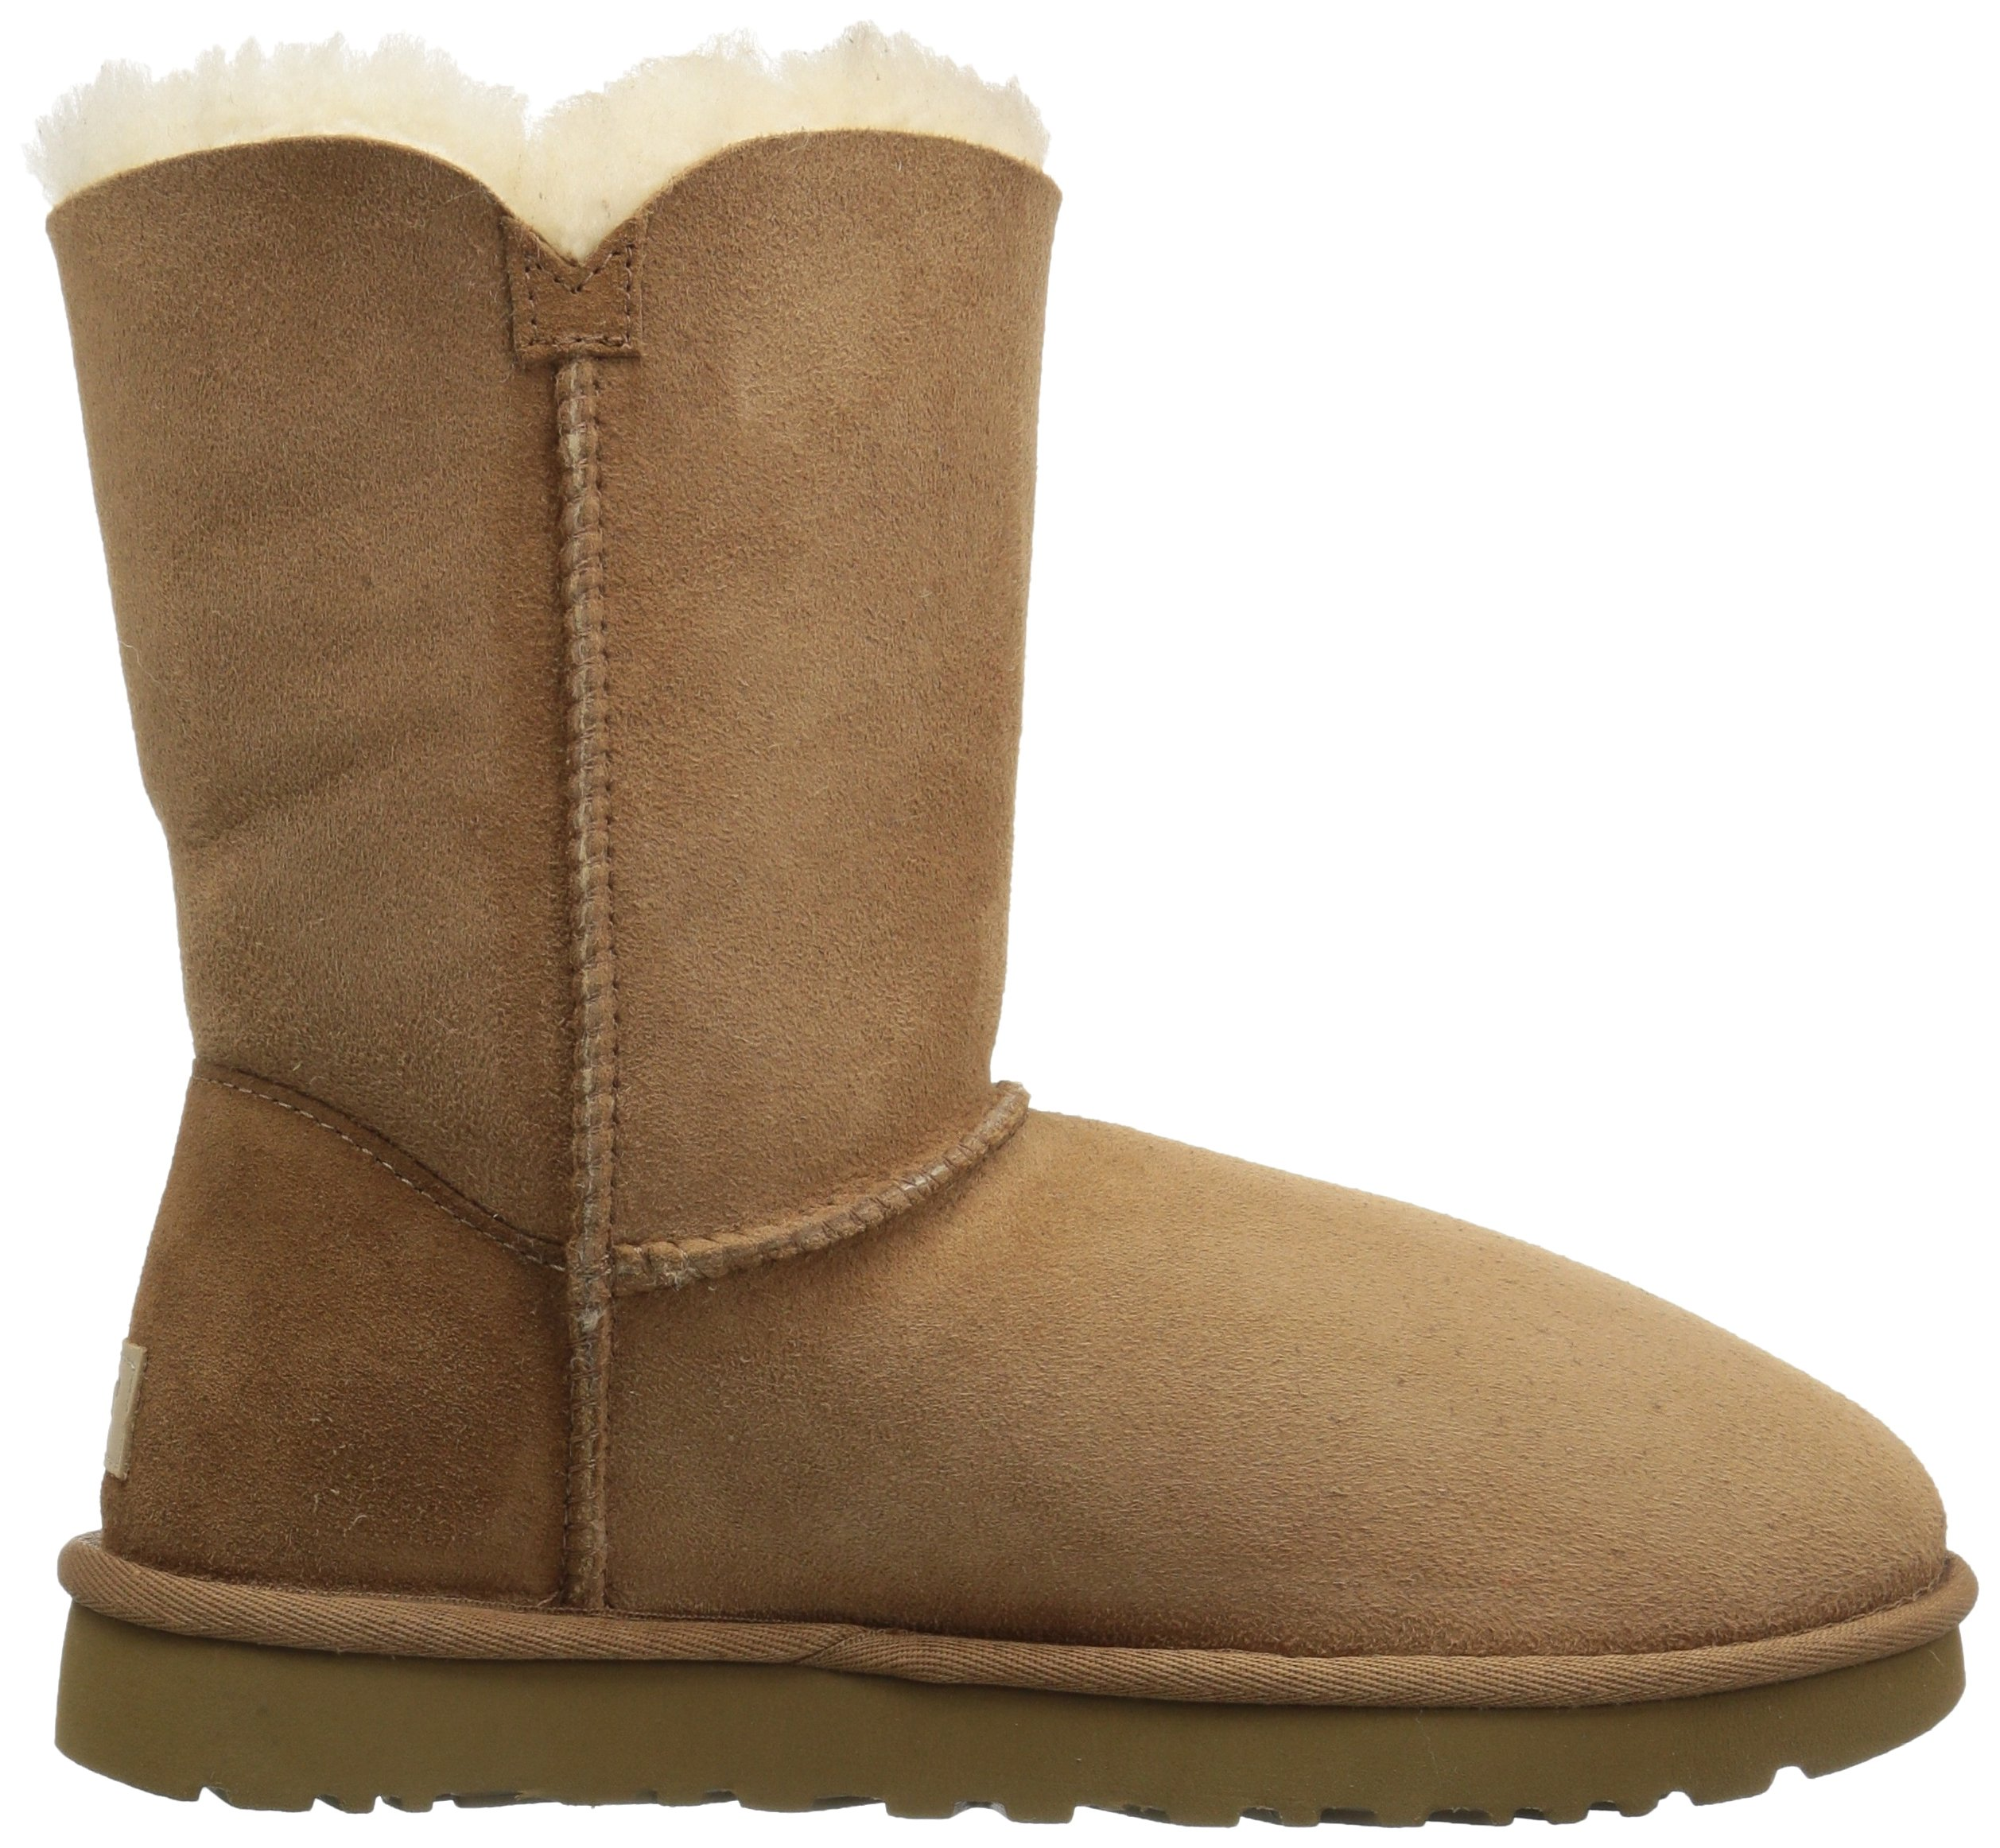 UGG Women's Bailey Button II Winter Boot, Chestnut, 8 B US by UGG (Image #7)